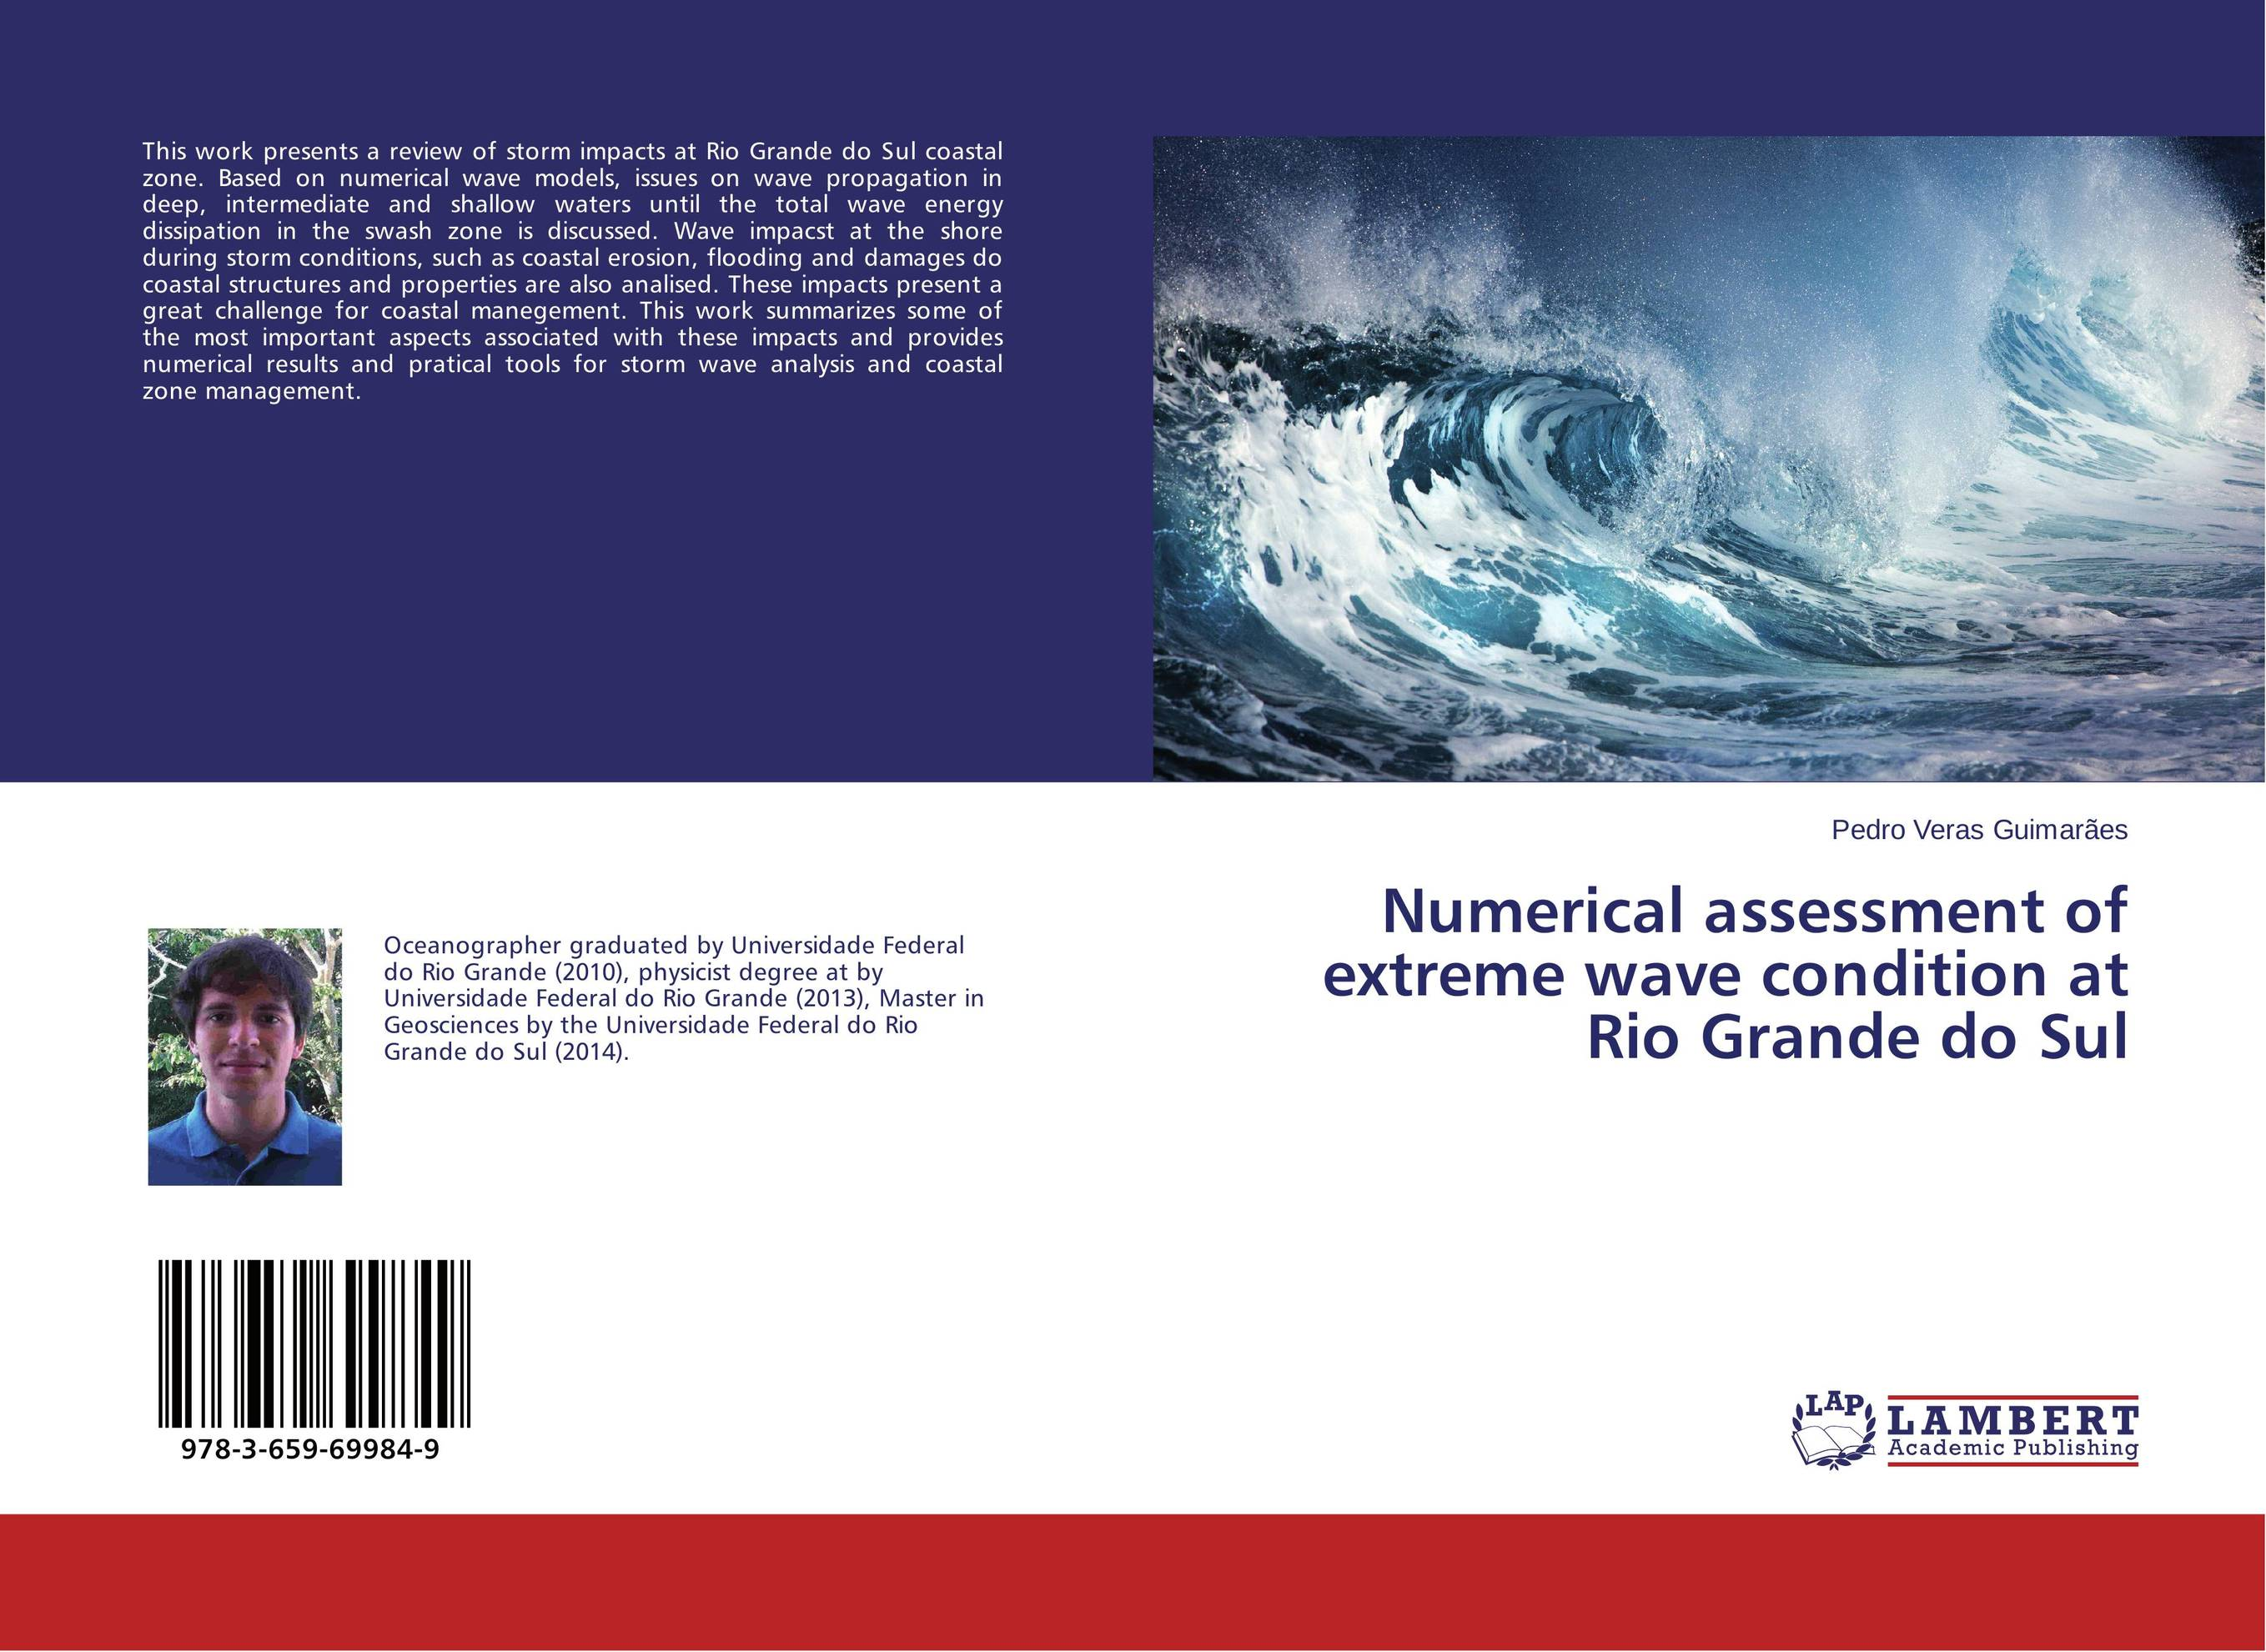 Numerical assessment of extreme wave condition at Rio Grande do Sul